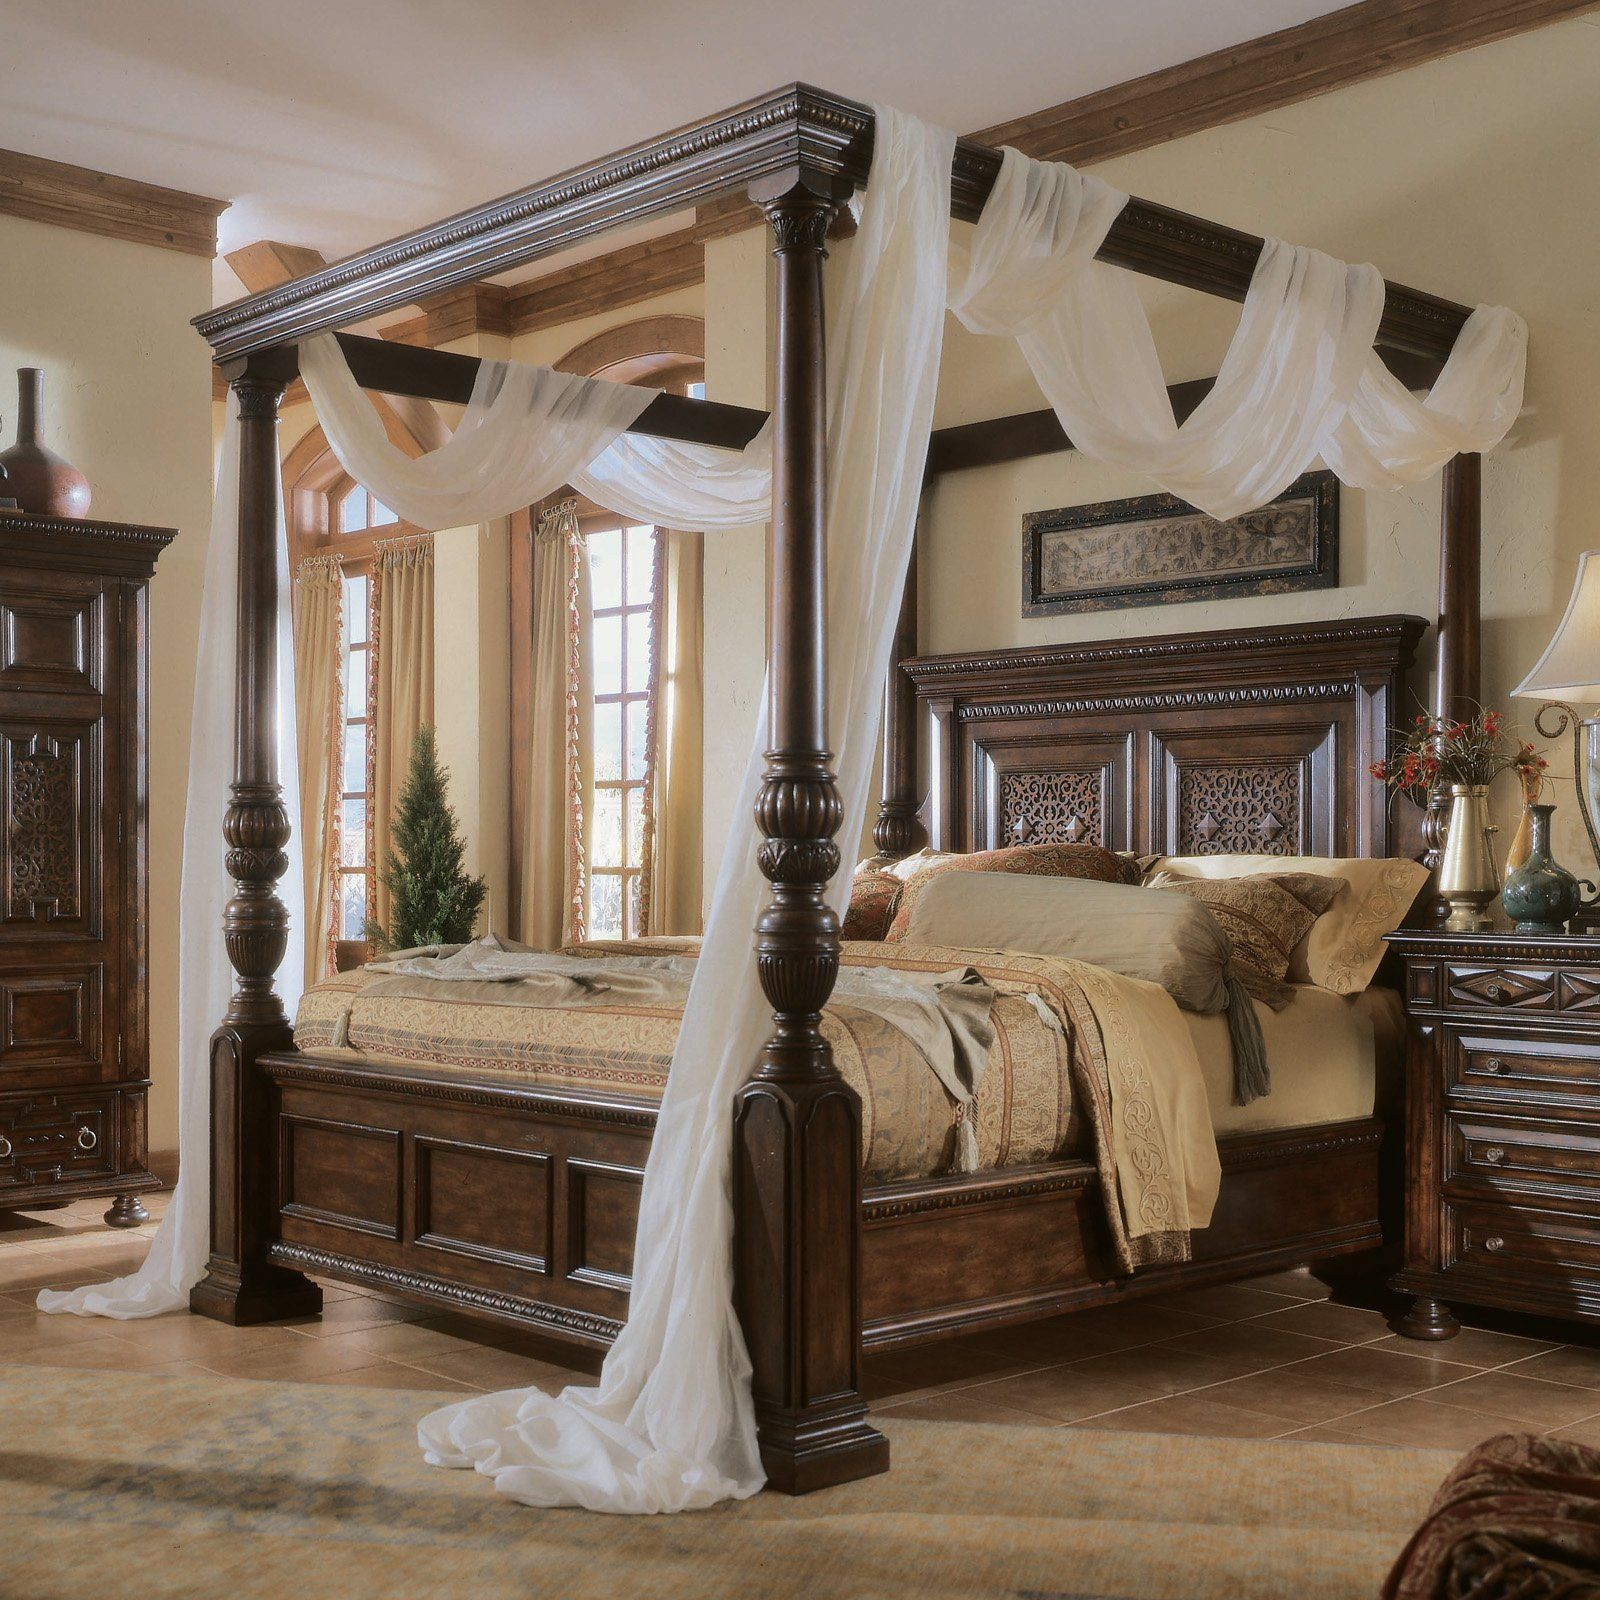 Brown curtains in bedroom - 15 Most Beautiful Decorated And Designed Beds